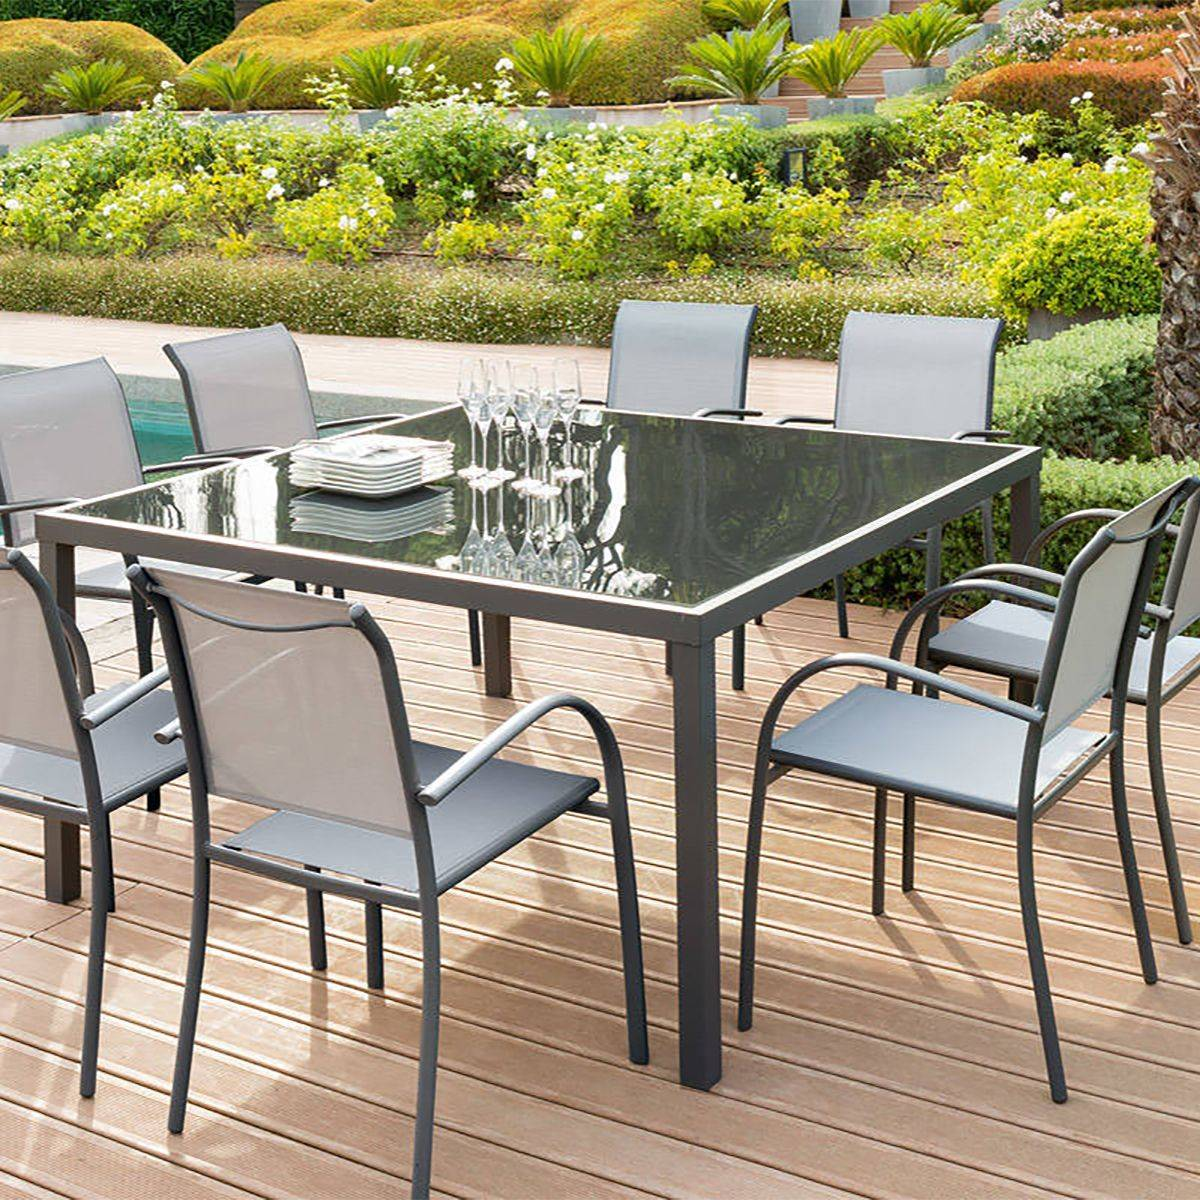 Table carr e piazza verre anthracite graphite hesp ride 8 places Table de jardin aluminium en solde